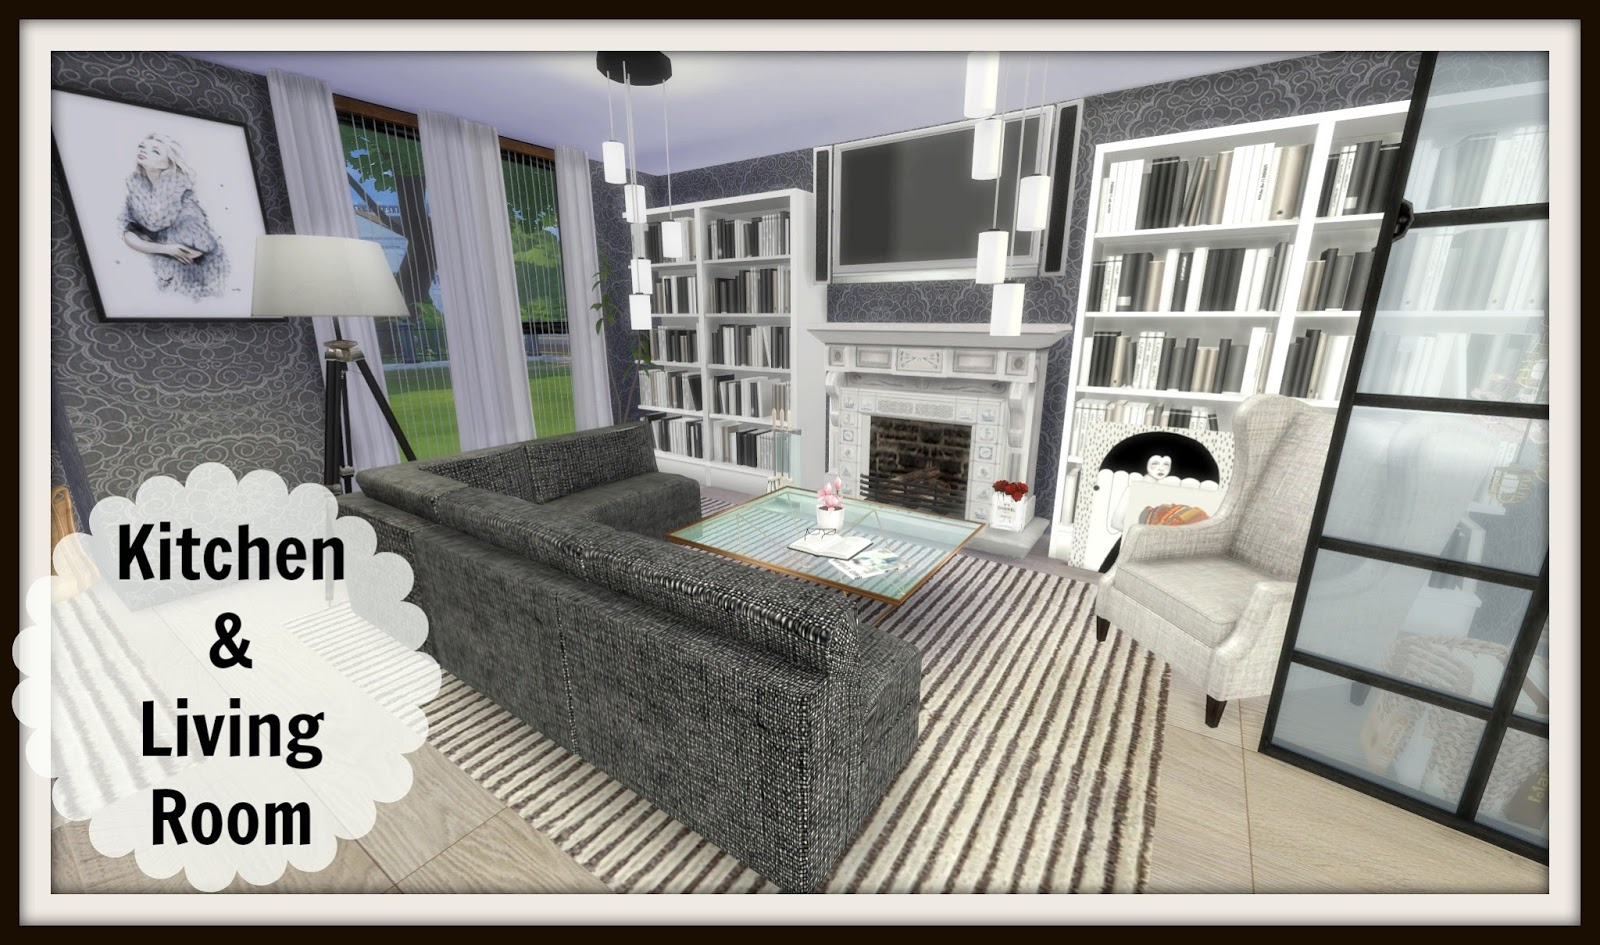 Sims 4 kitchen living room dinha for Sims 4 living room ideas